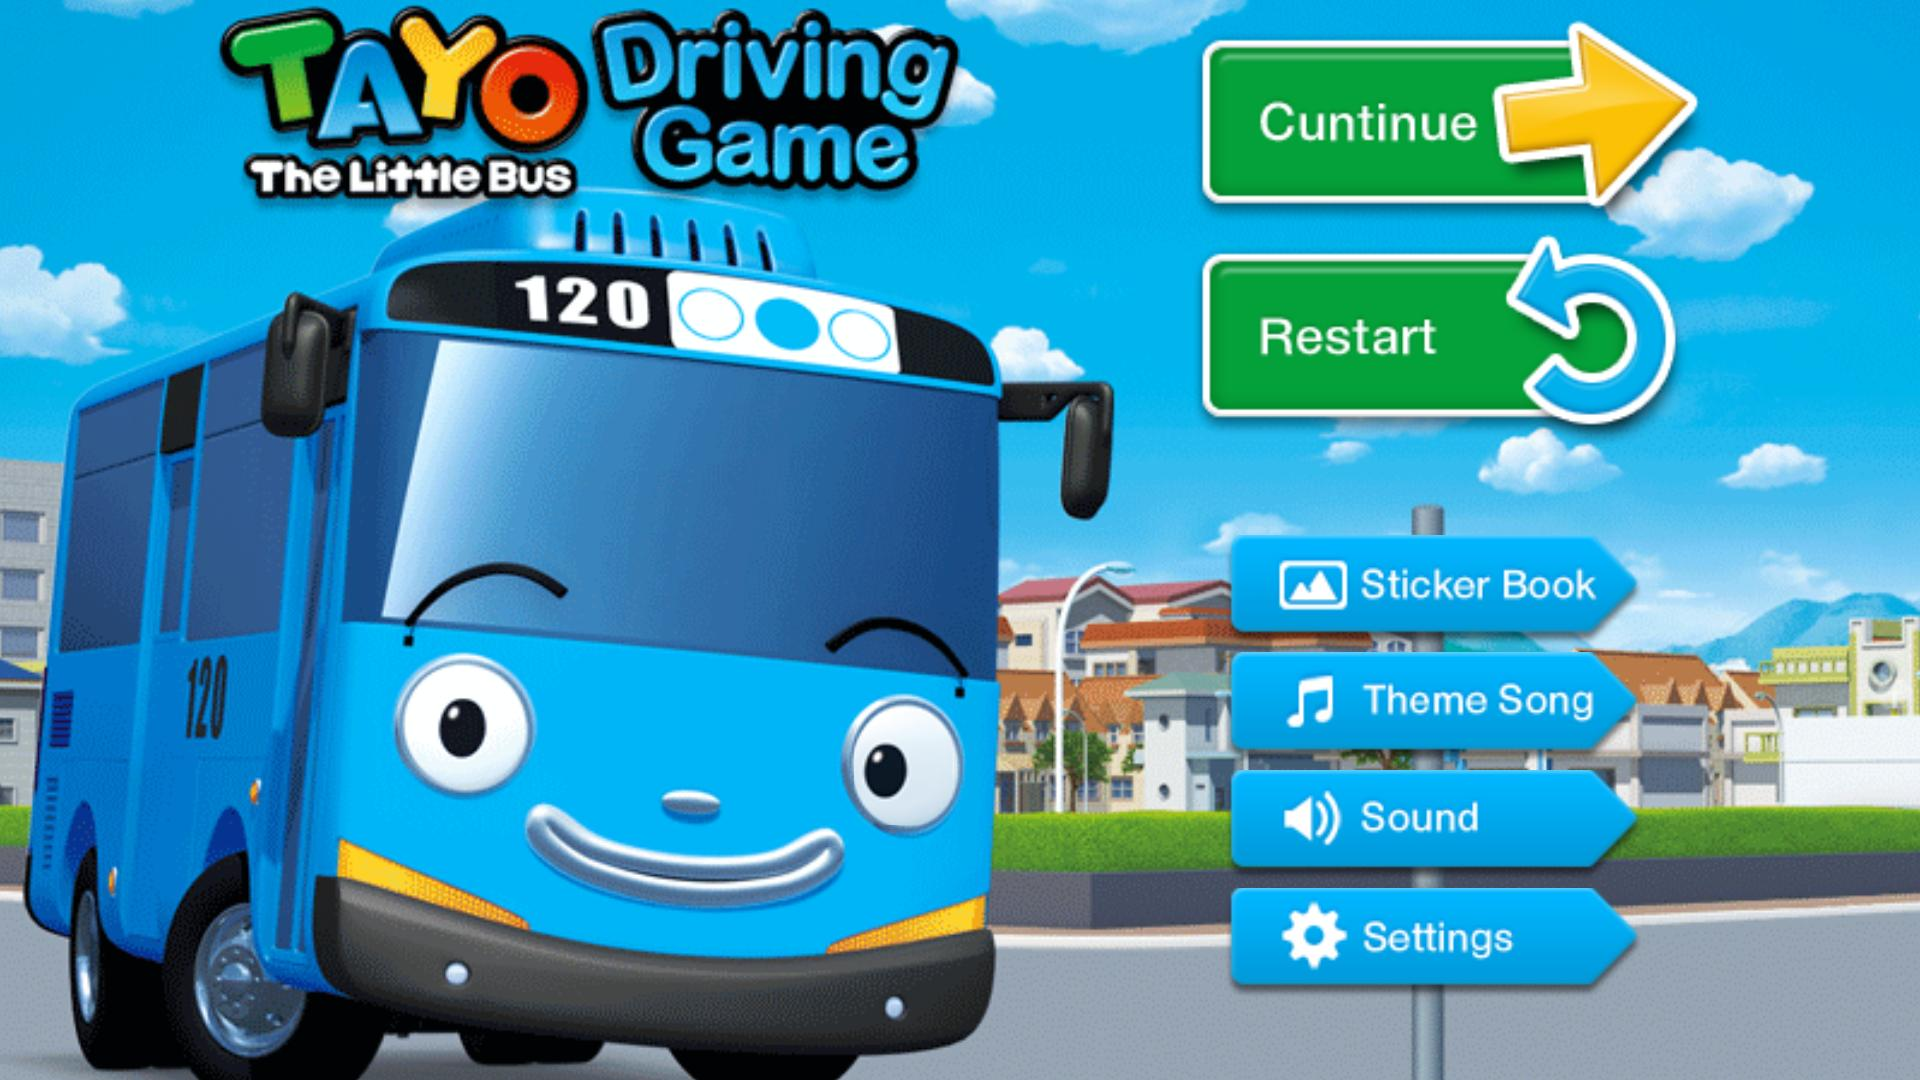 Tayo S Driving Game For Android Apk Download